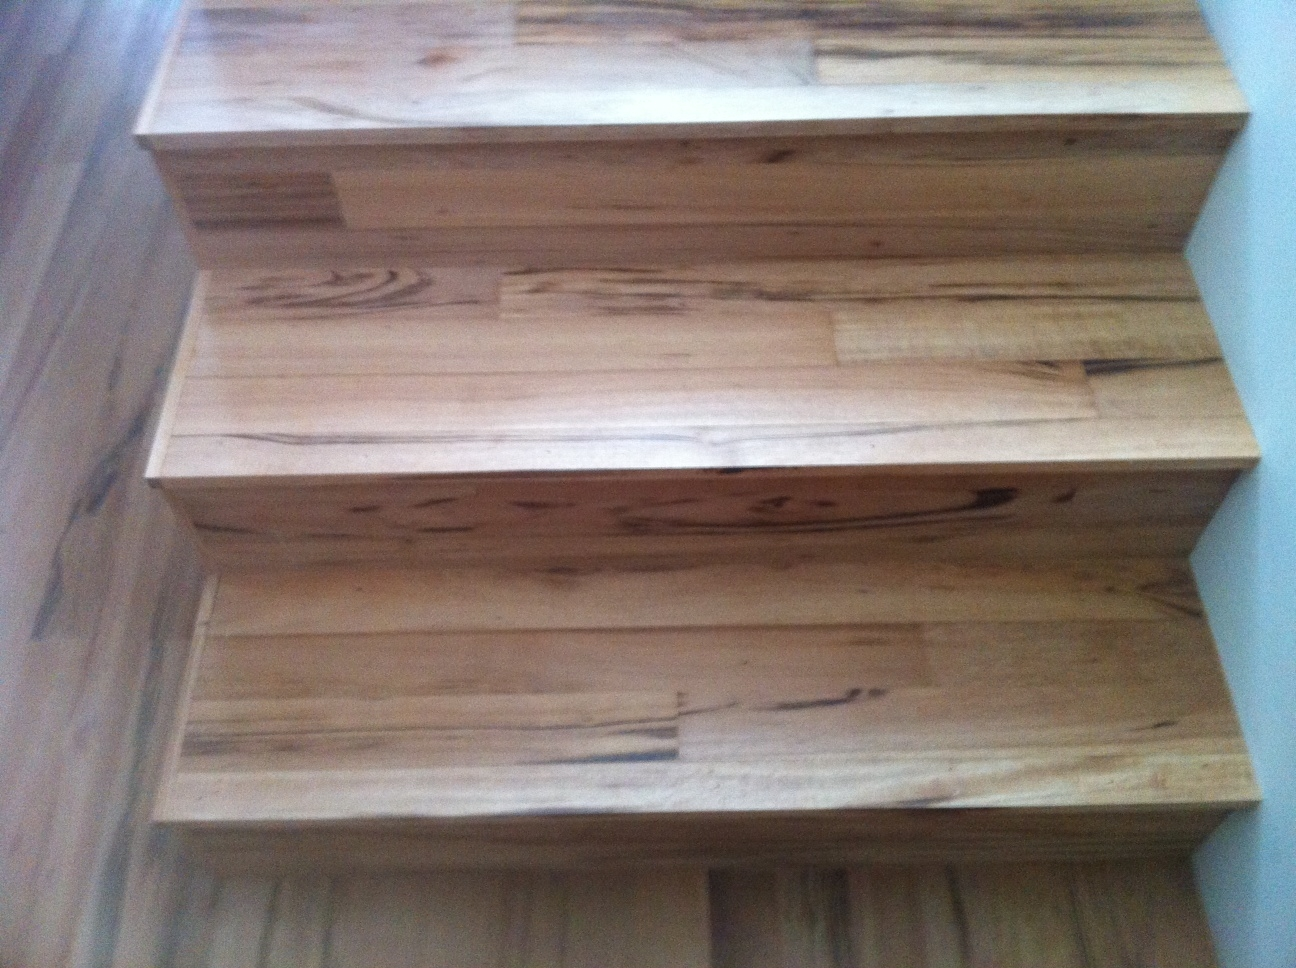 Stair Treads Using Flooring Stair Parts Blog   Stairs Covered In Wood   Simple   Wood Paneling   Glass   Rustic   White